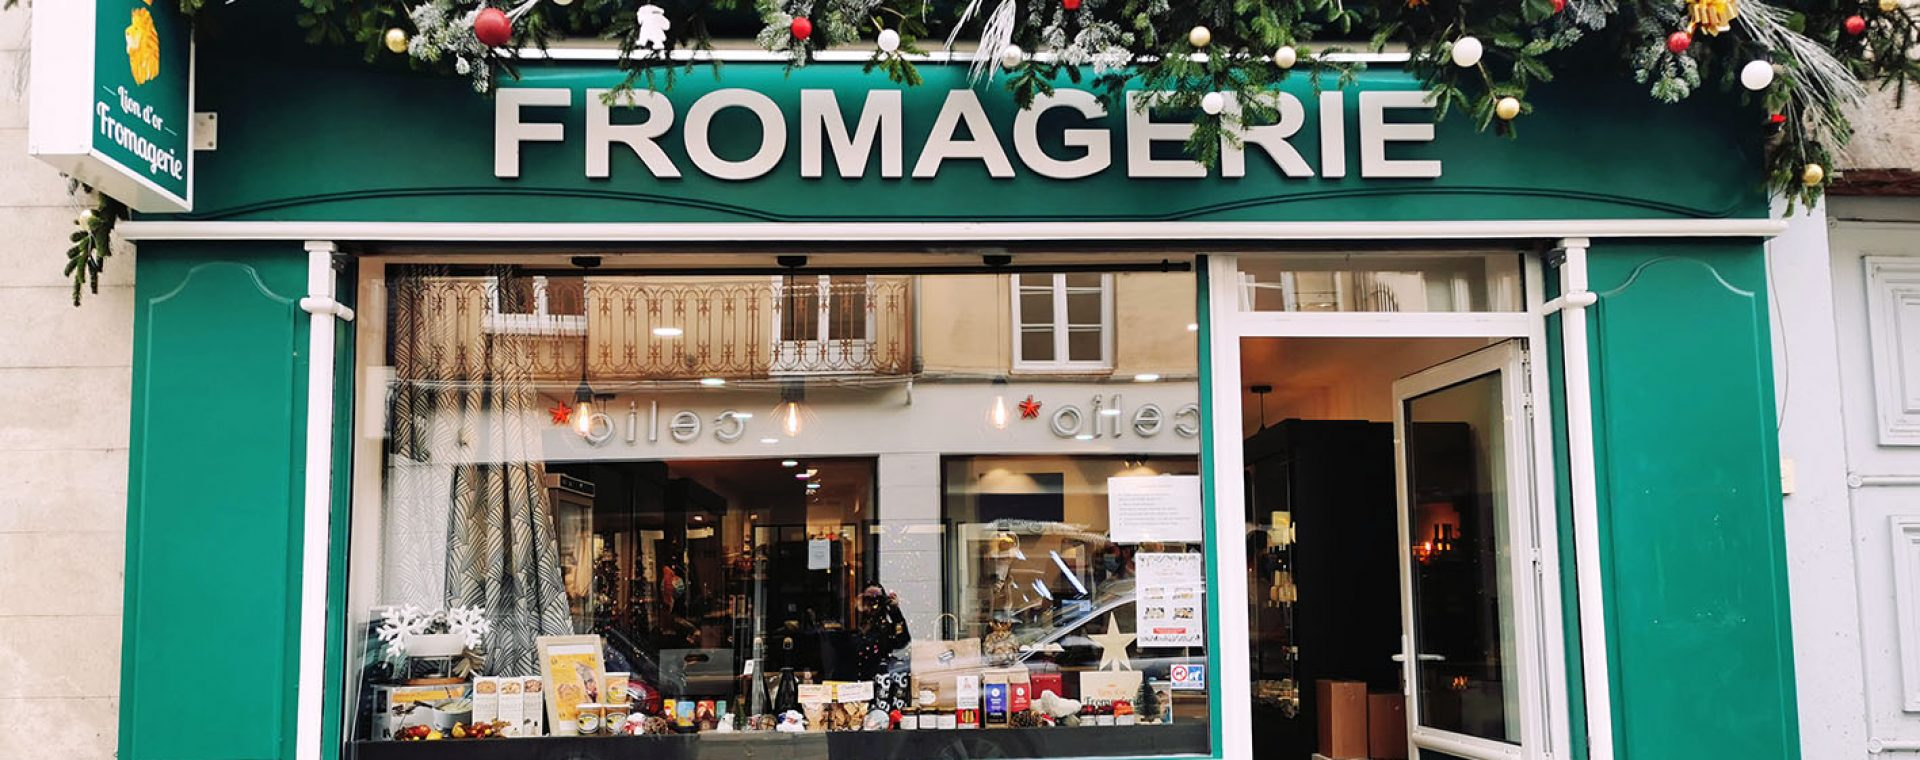 Fromagerie Lion d'or